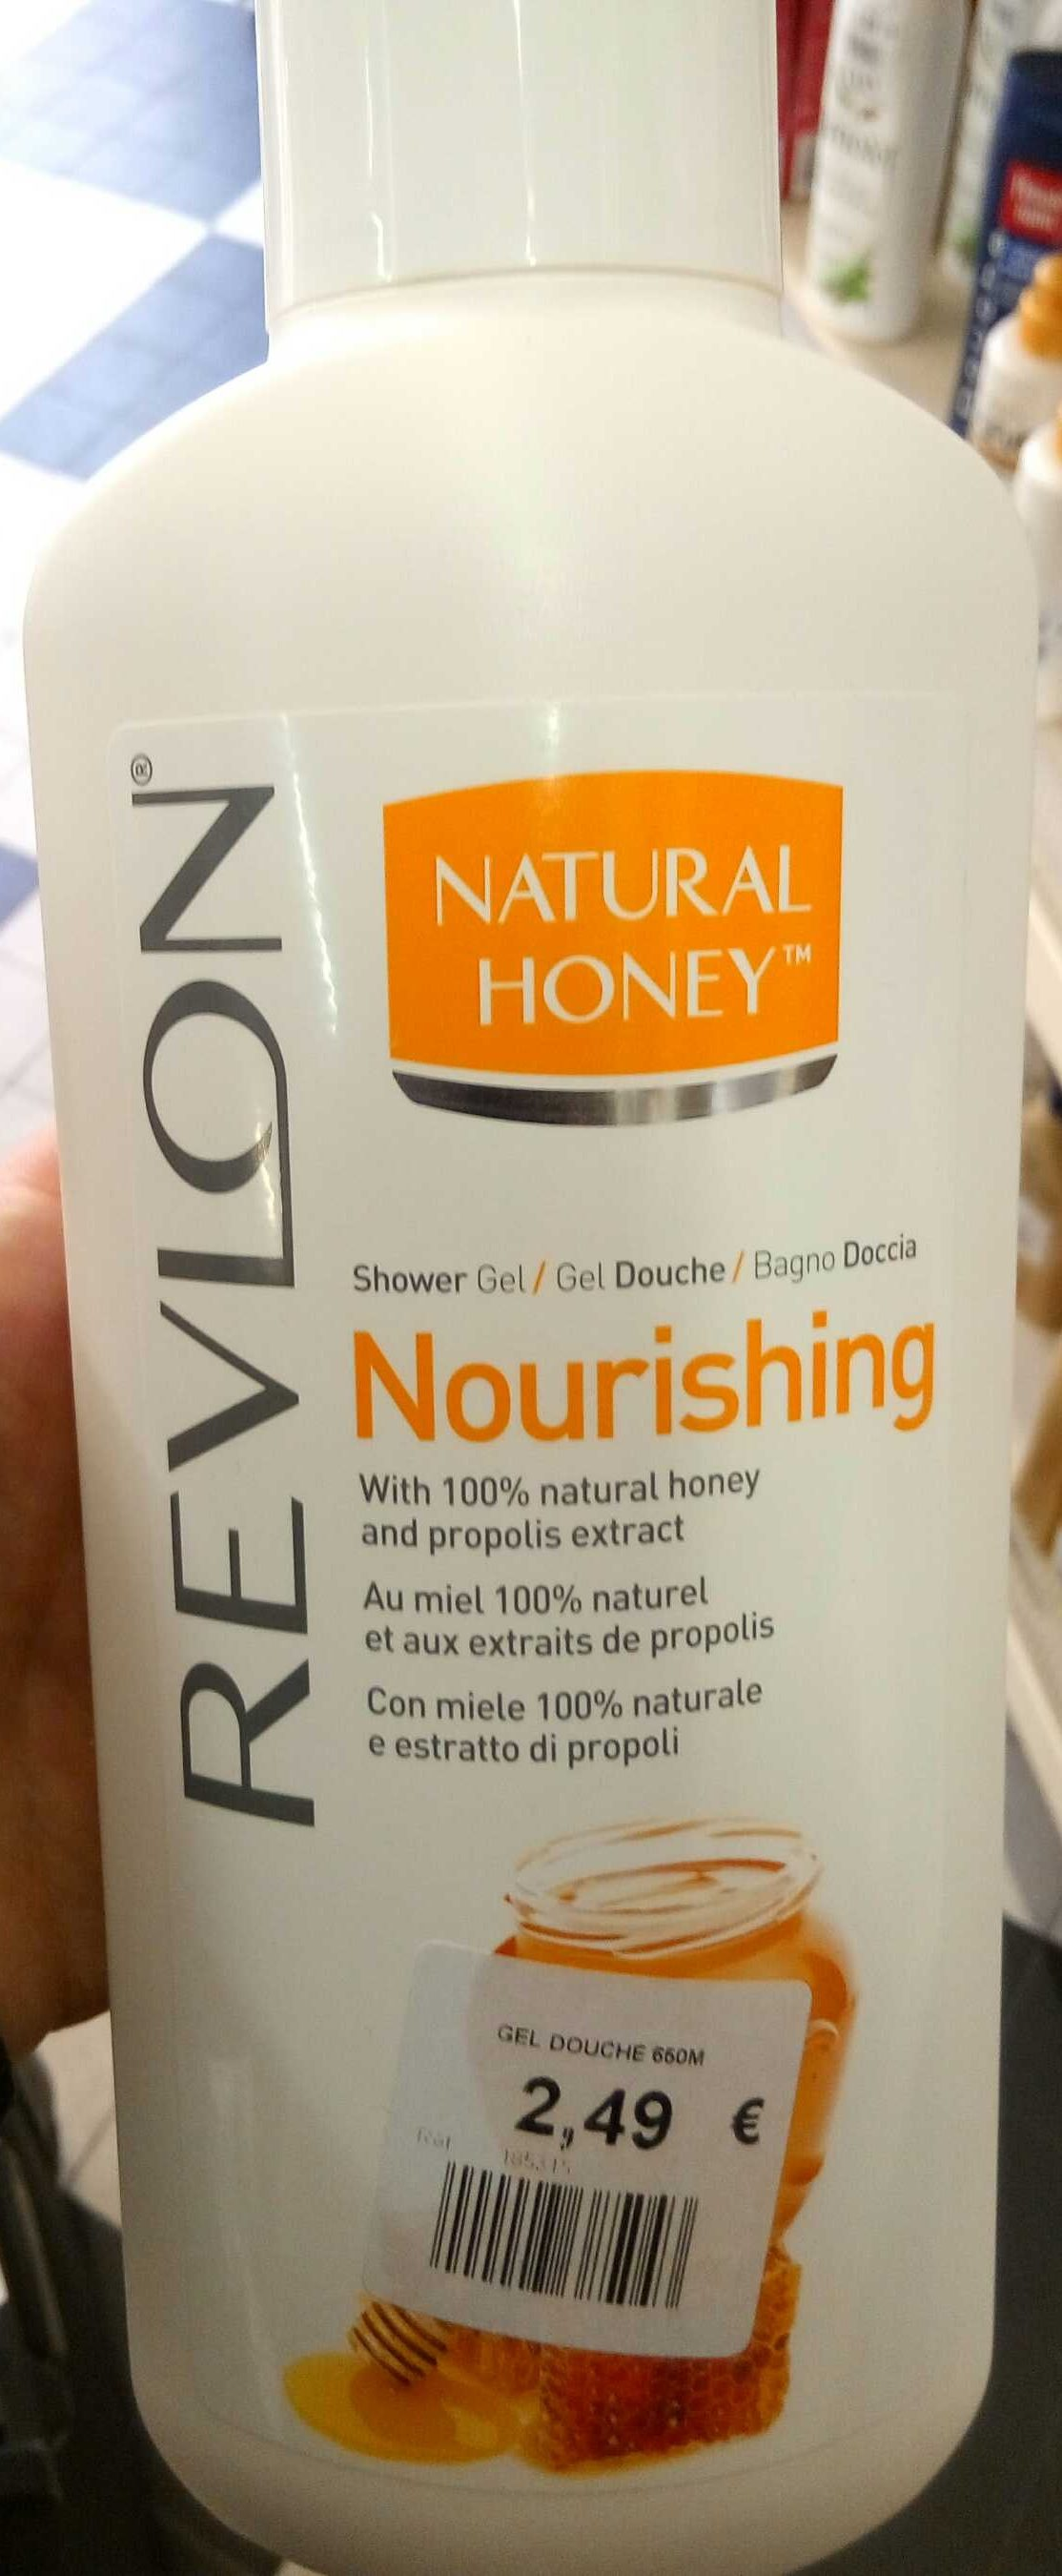 Natural Honey Nourishing - Product